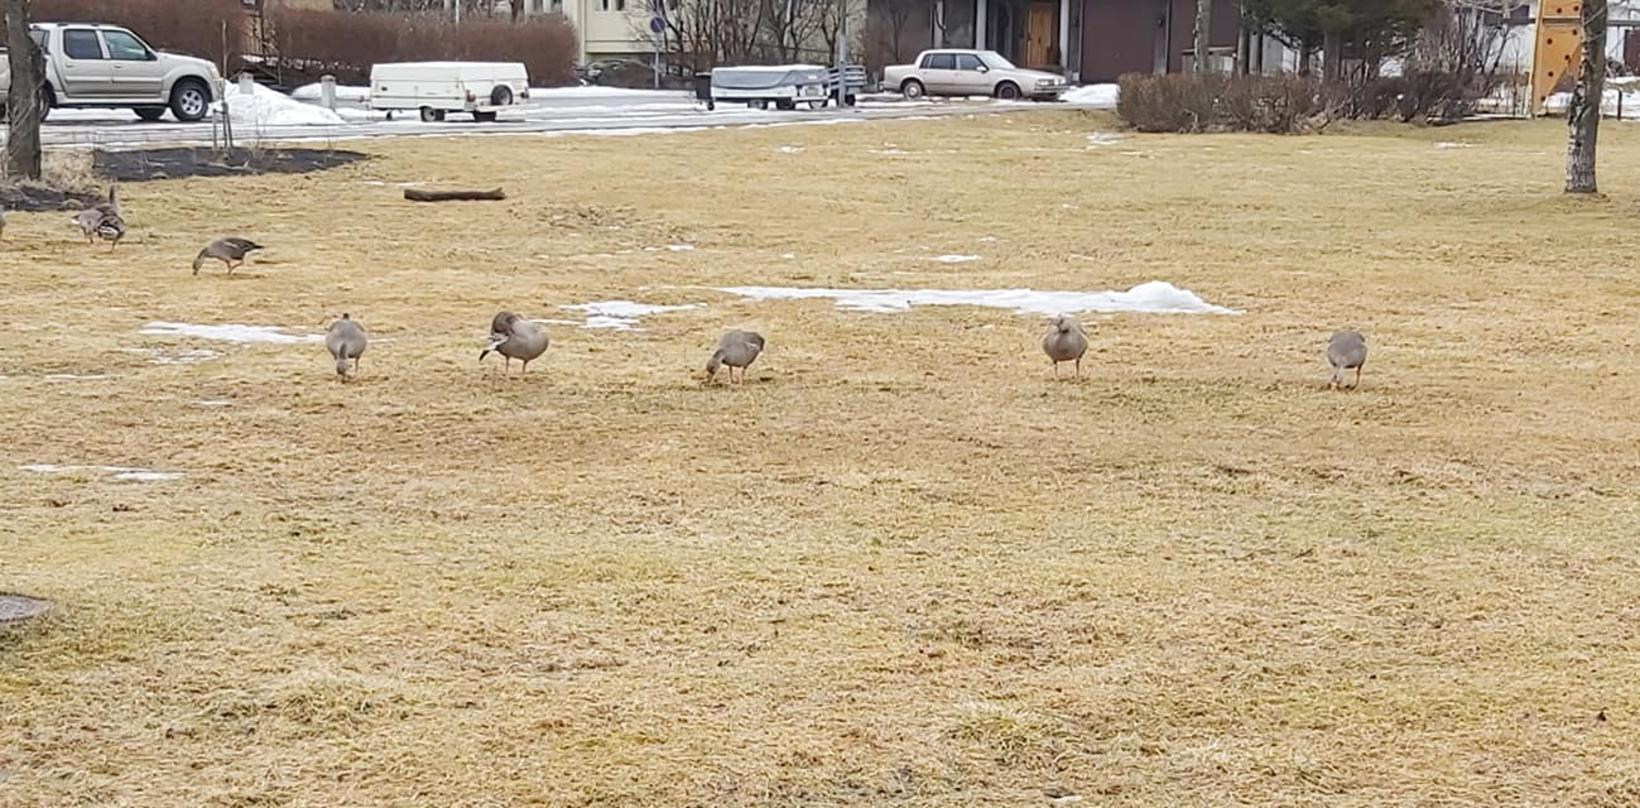 The geese appear familiar with the importance of social distancing.